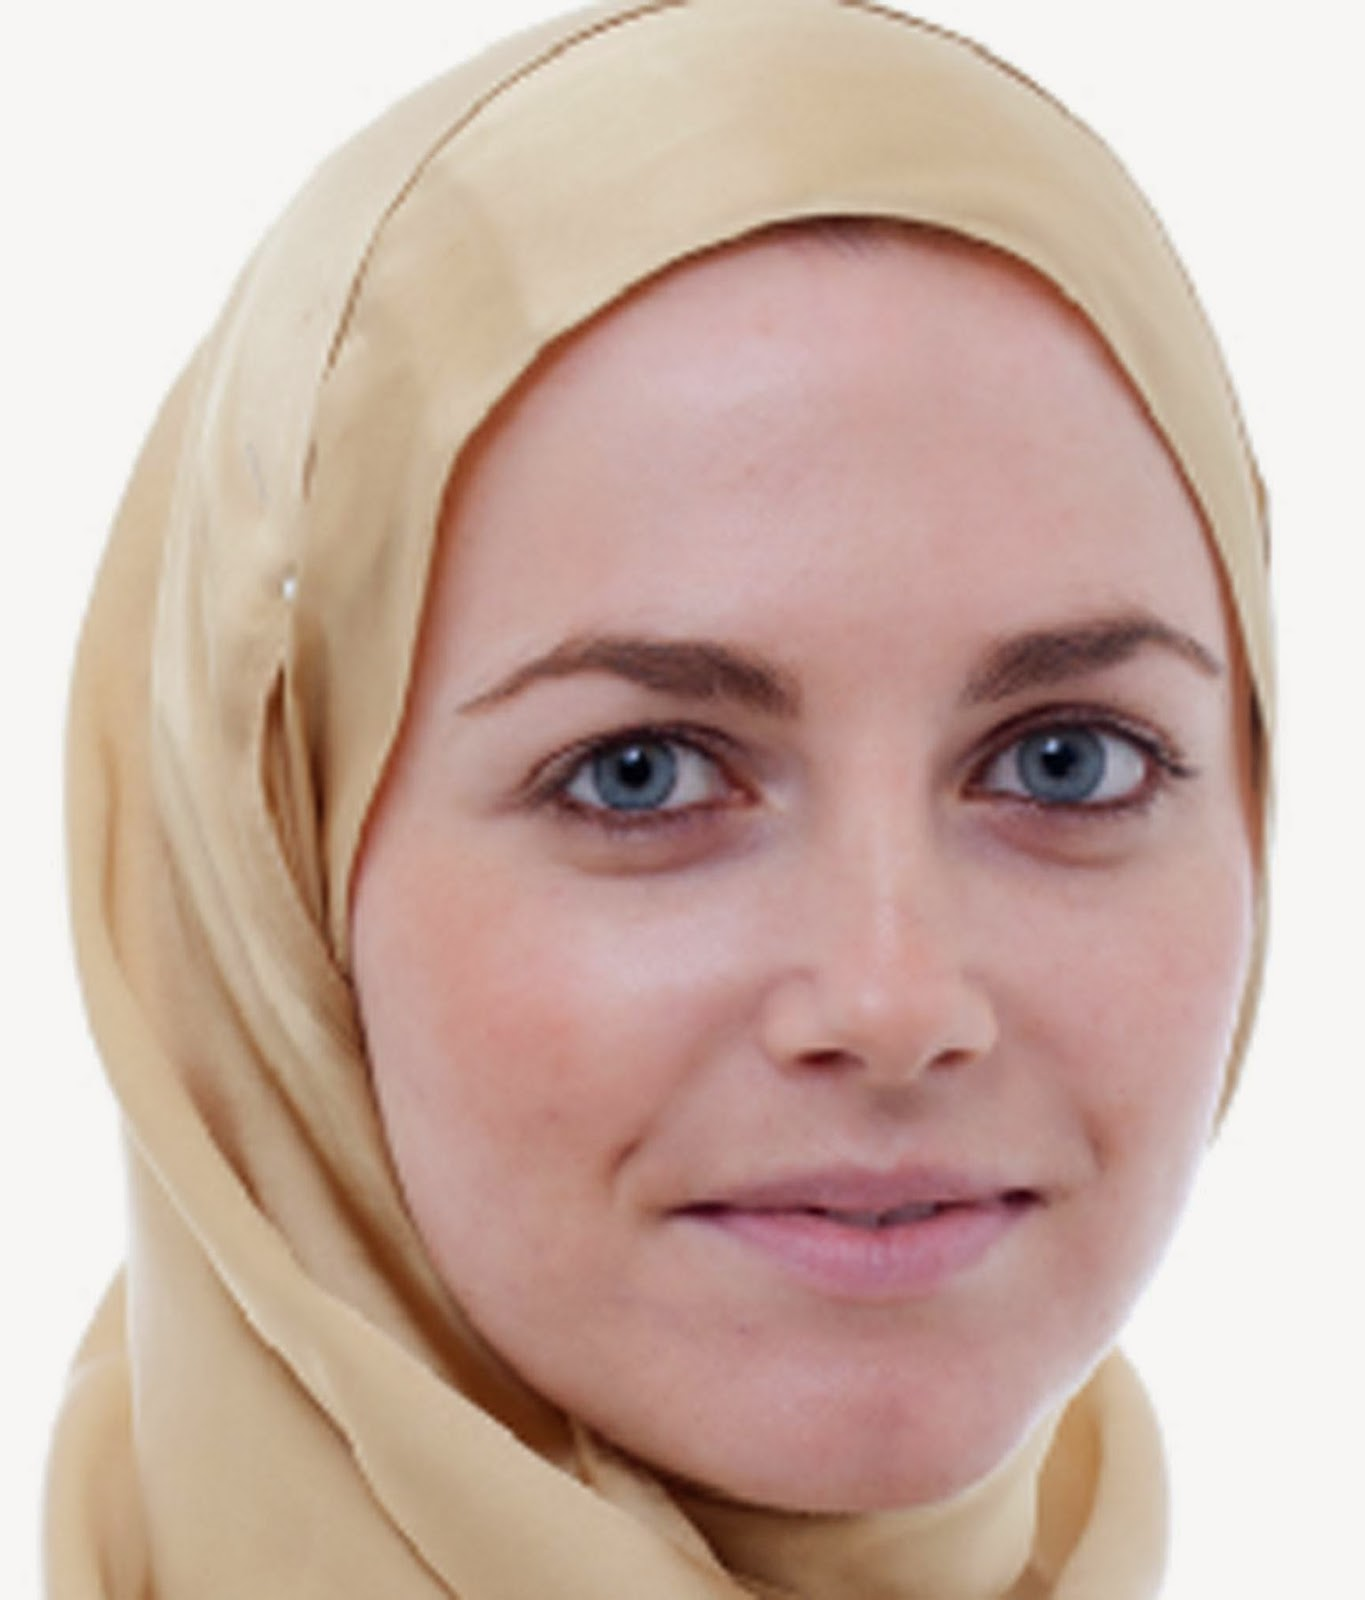 corsica single muslim girls Meet bastia muslim french women for friendship and find your true love at muslimacom sign up today and browse profiles of bastia muslim french women for friendship for free.